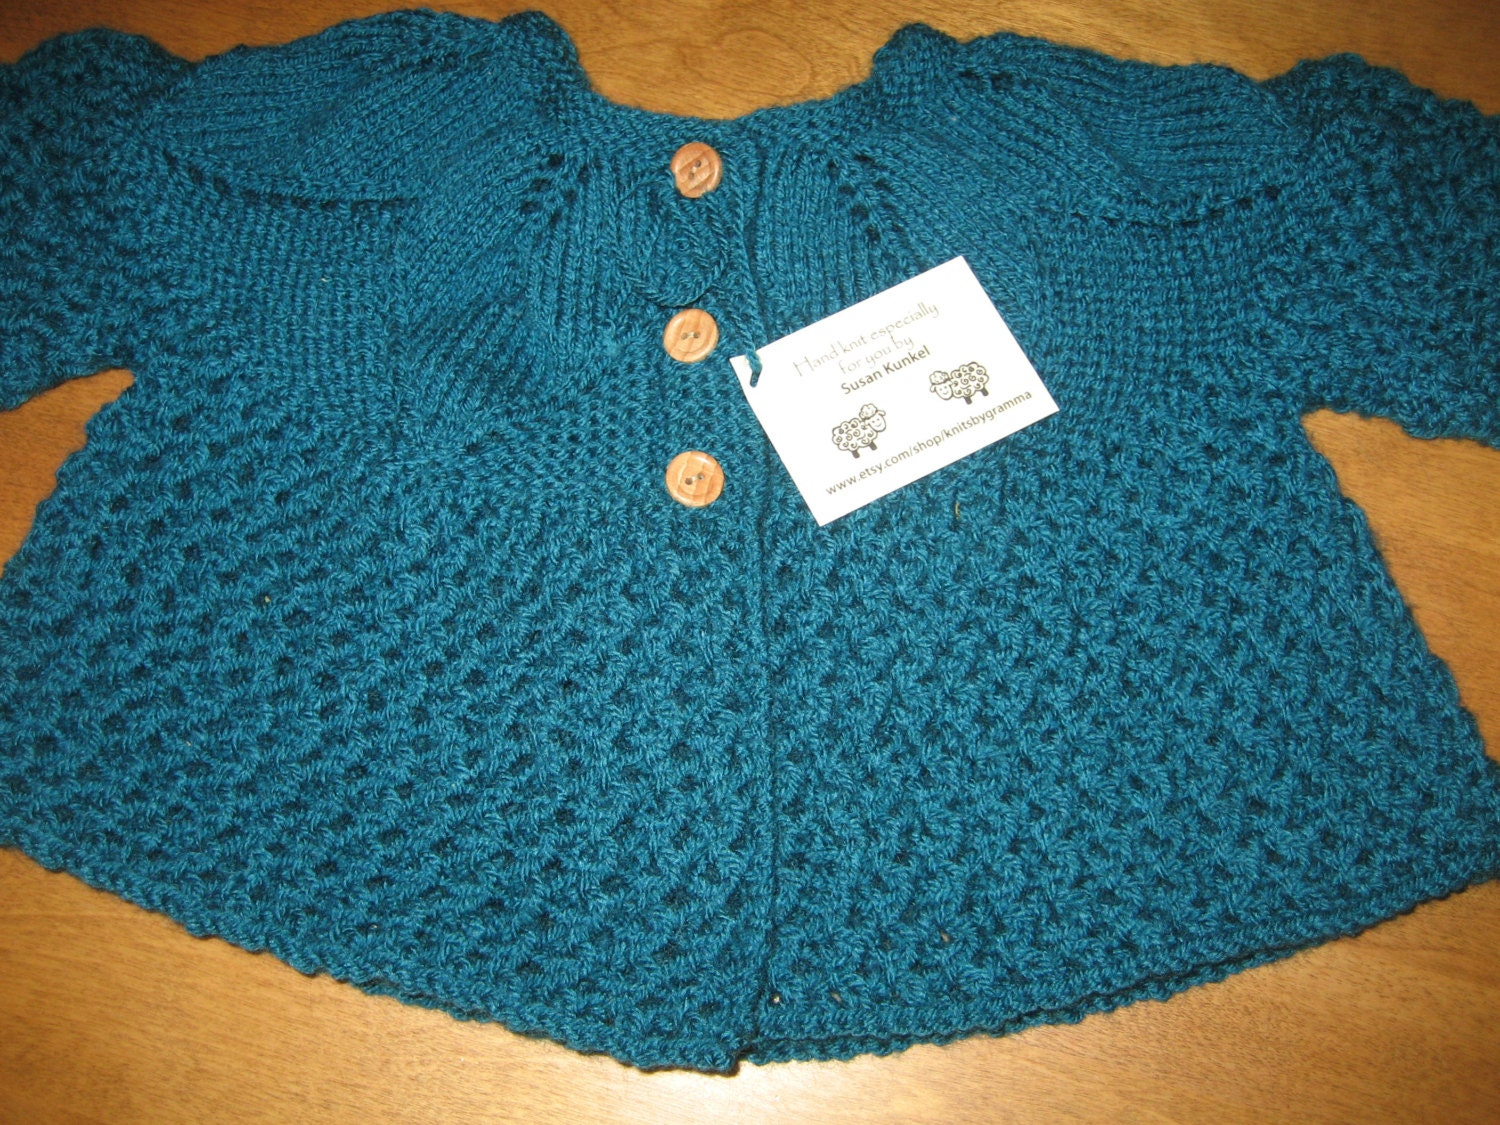 Knitting Baby Sweater Measurements : Baby knit sweater sizes month size